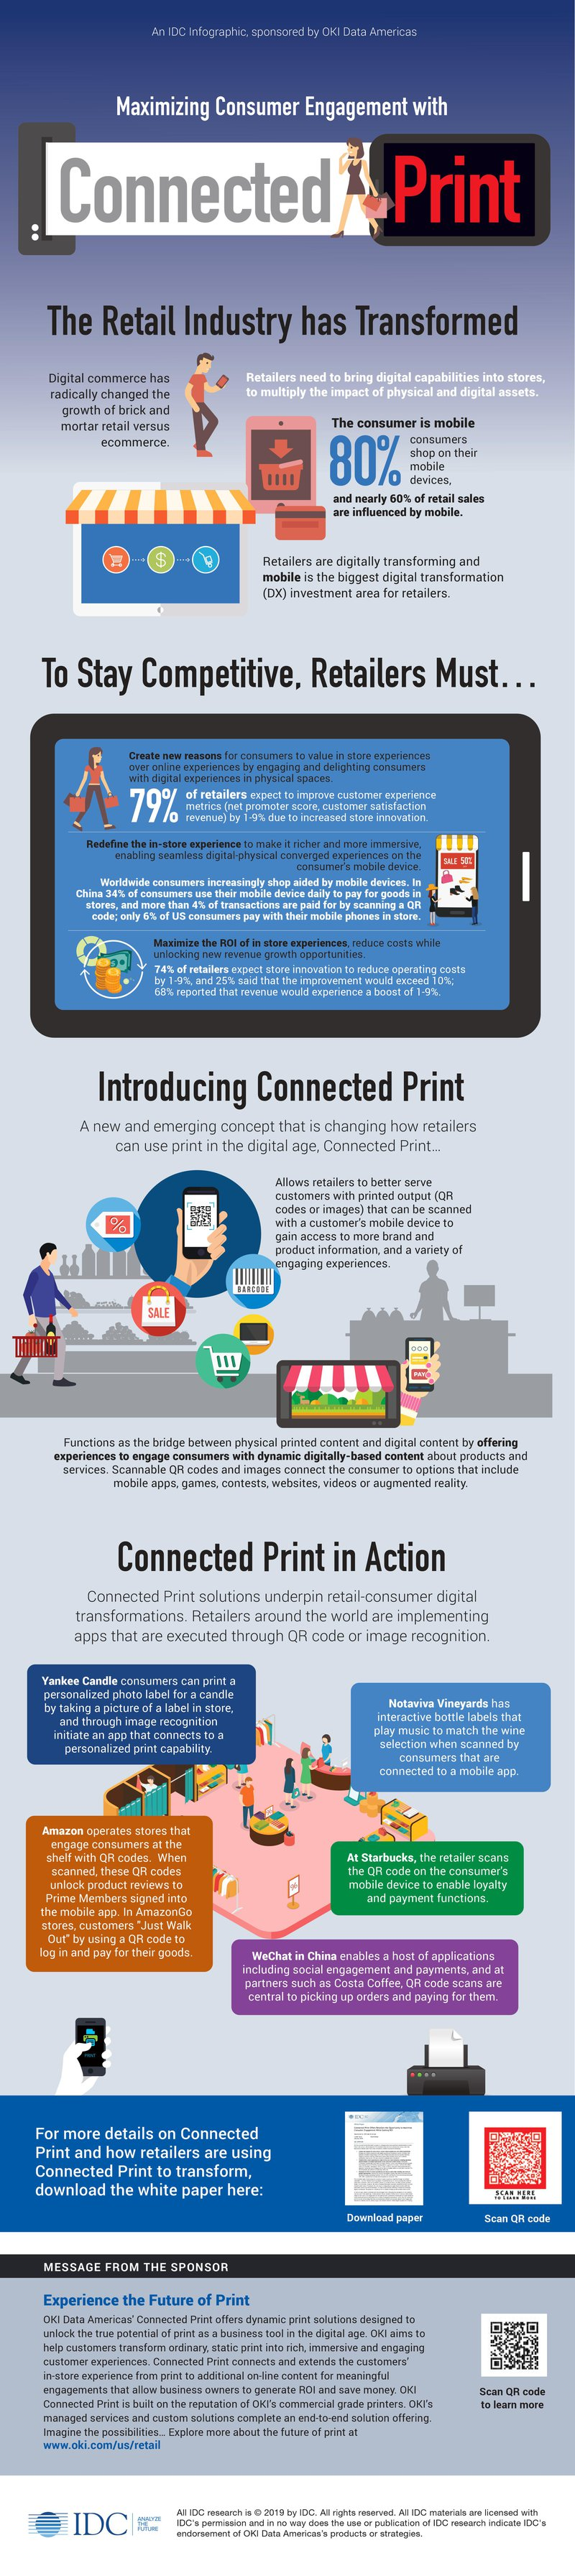 Infographic explaining how to maximize consumer engagement in the retail industry with connected print